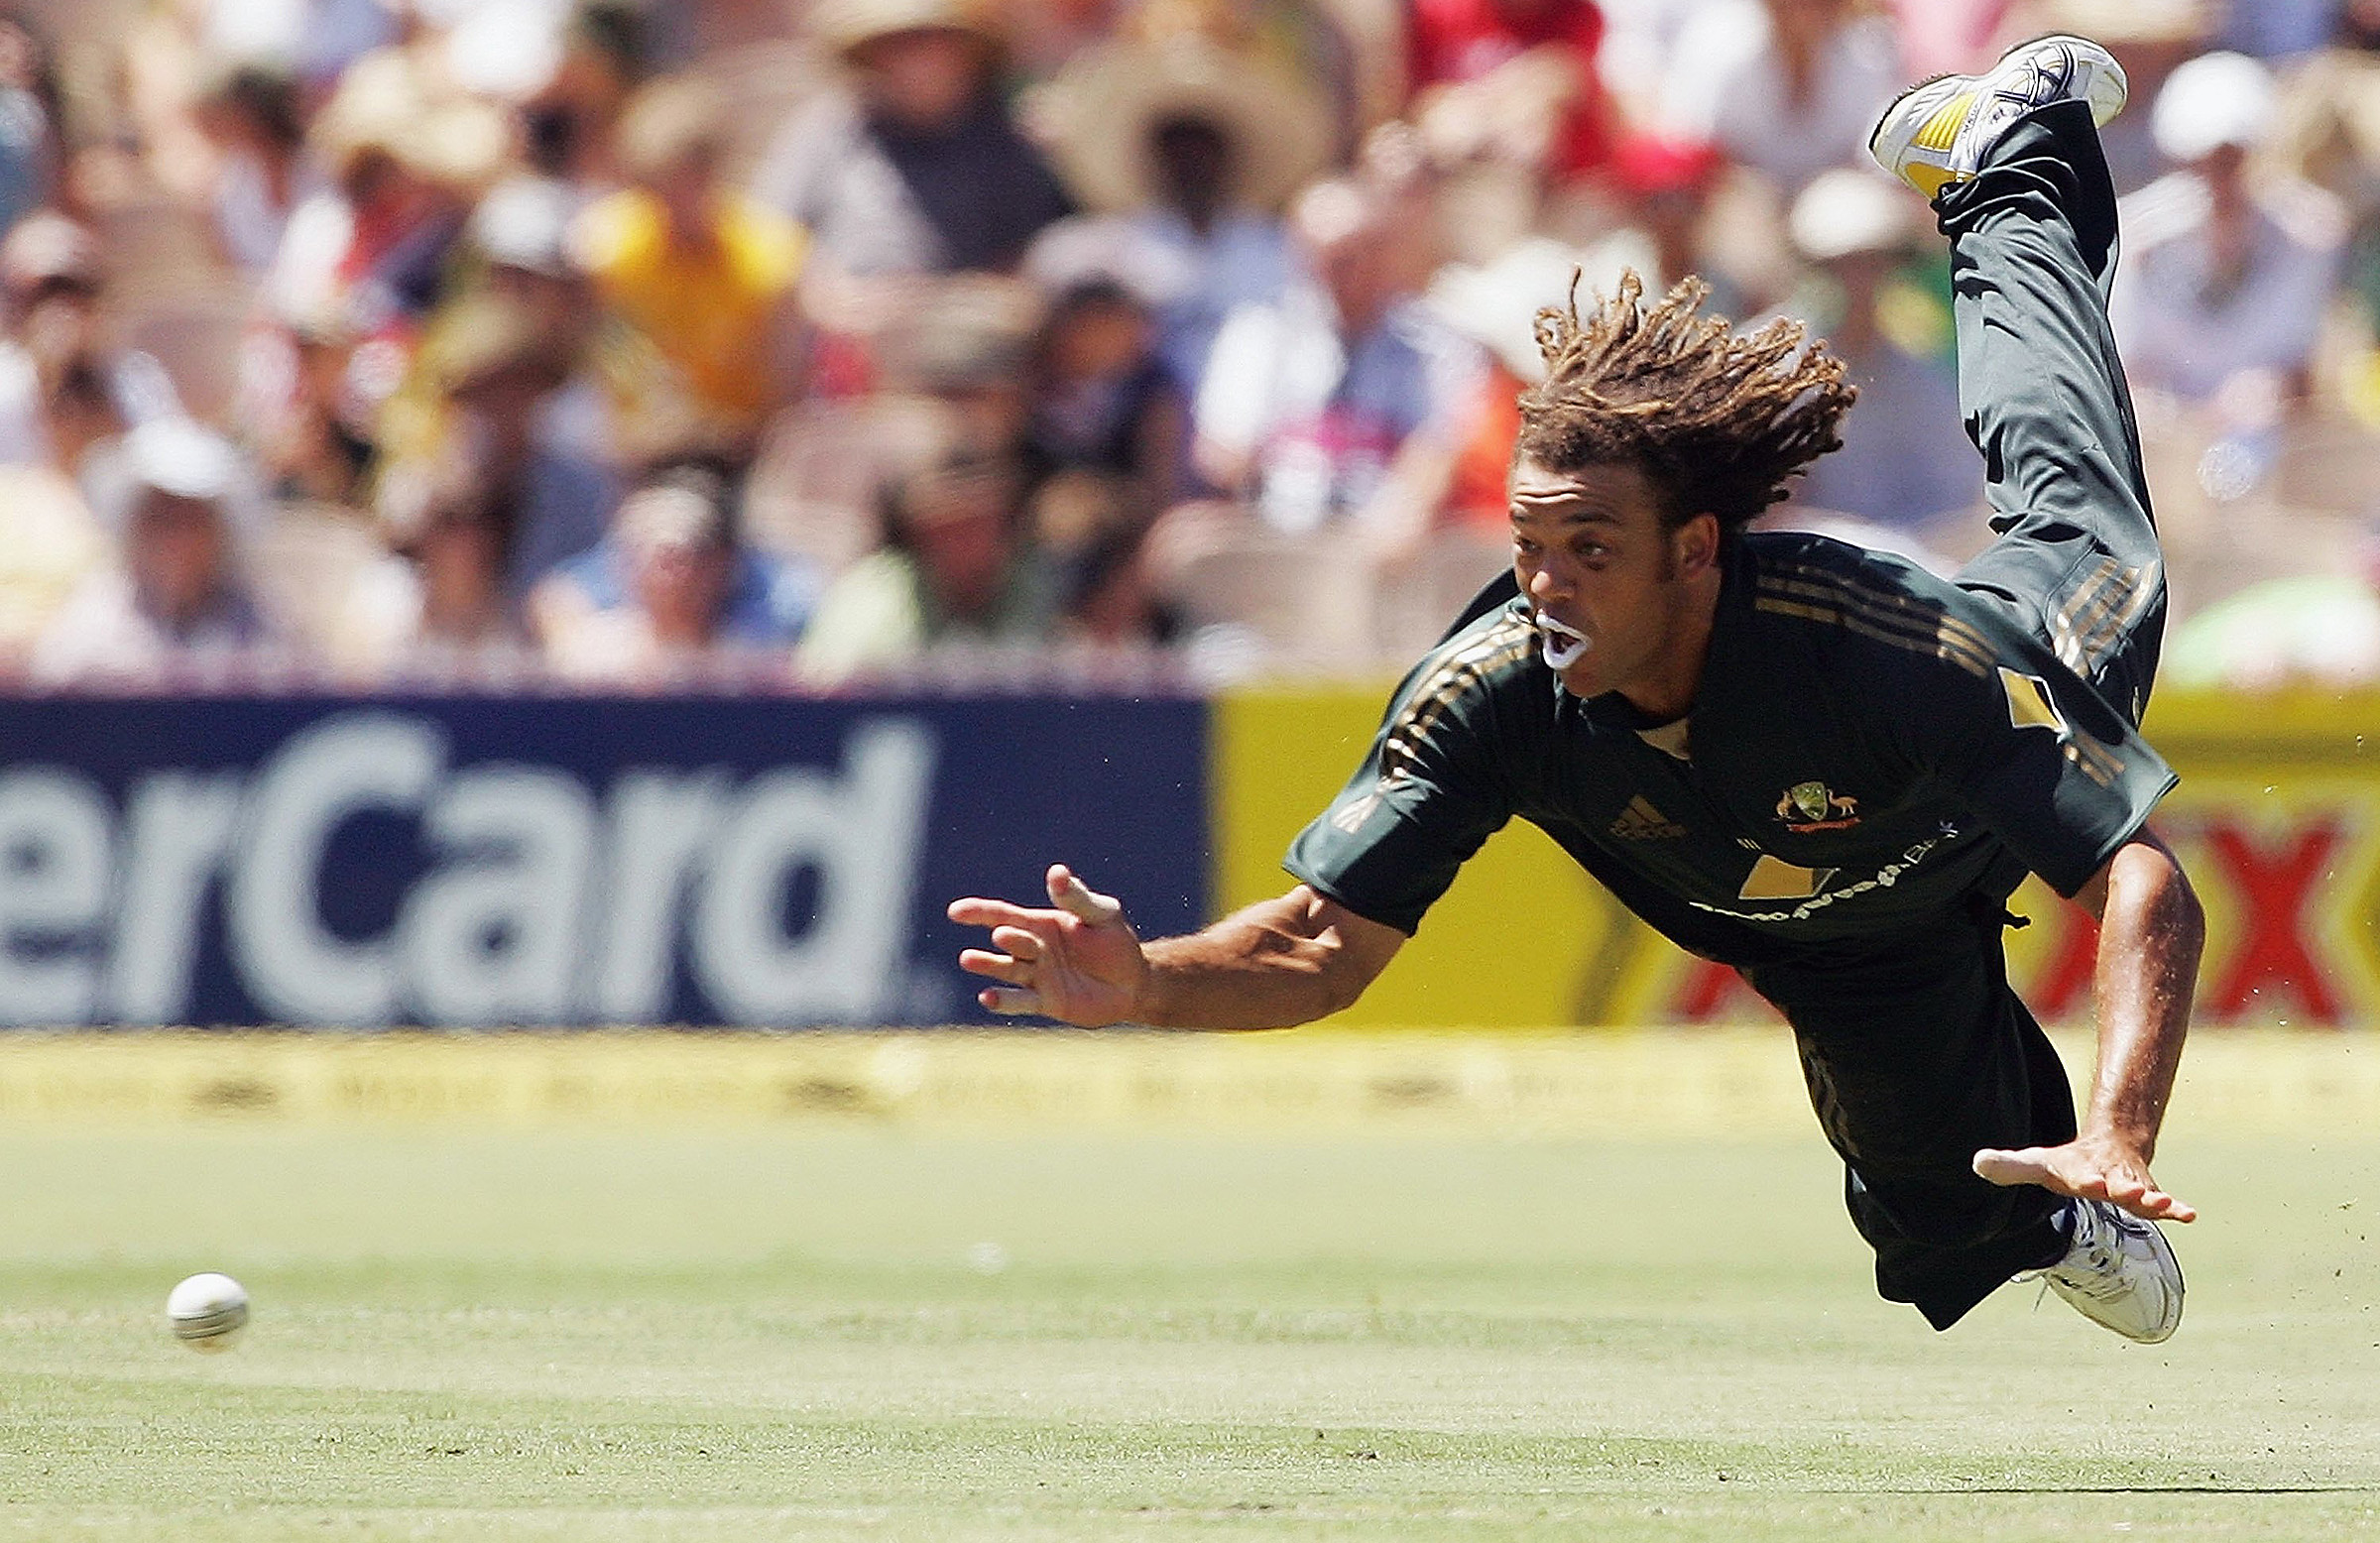 Symonds threw everything into his fielding // Getty